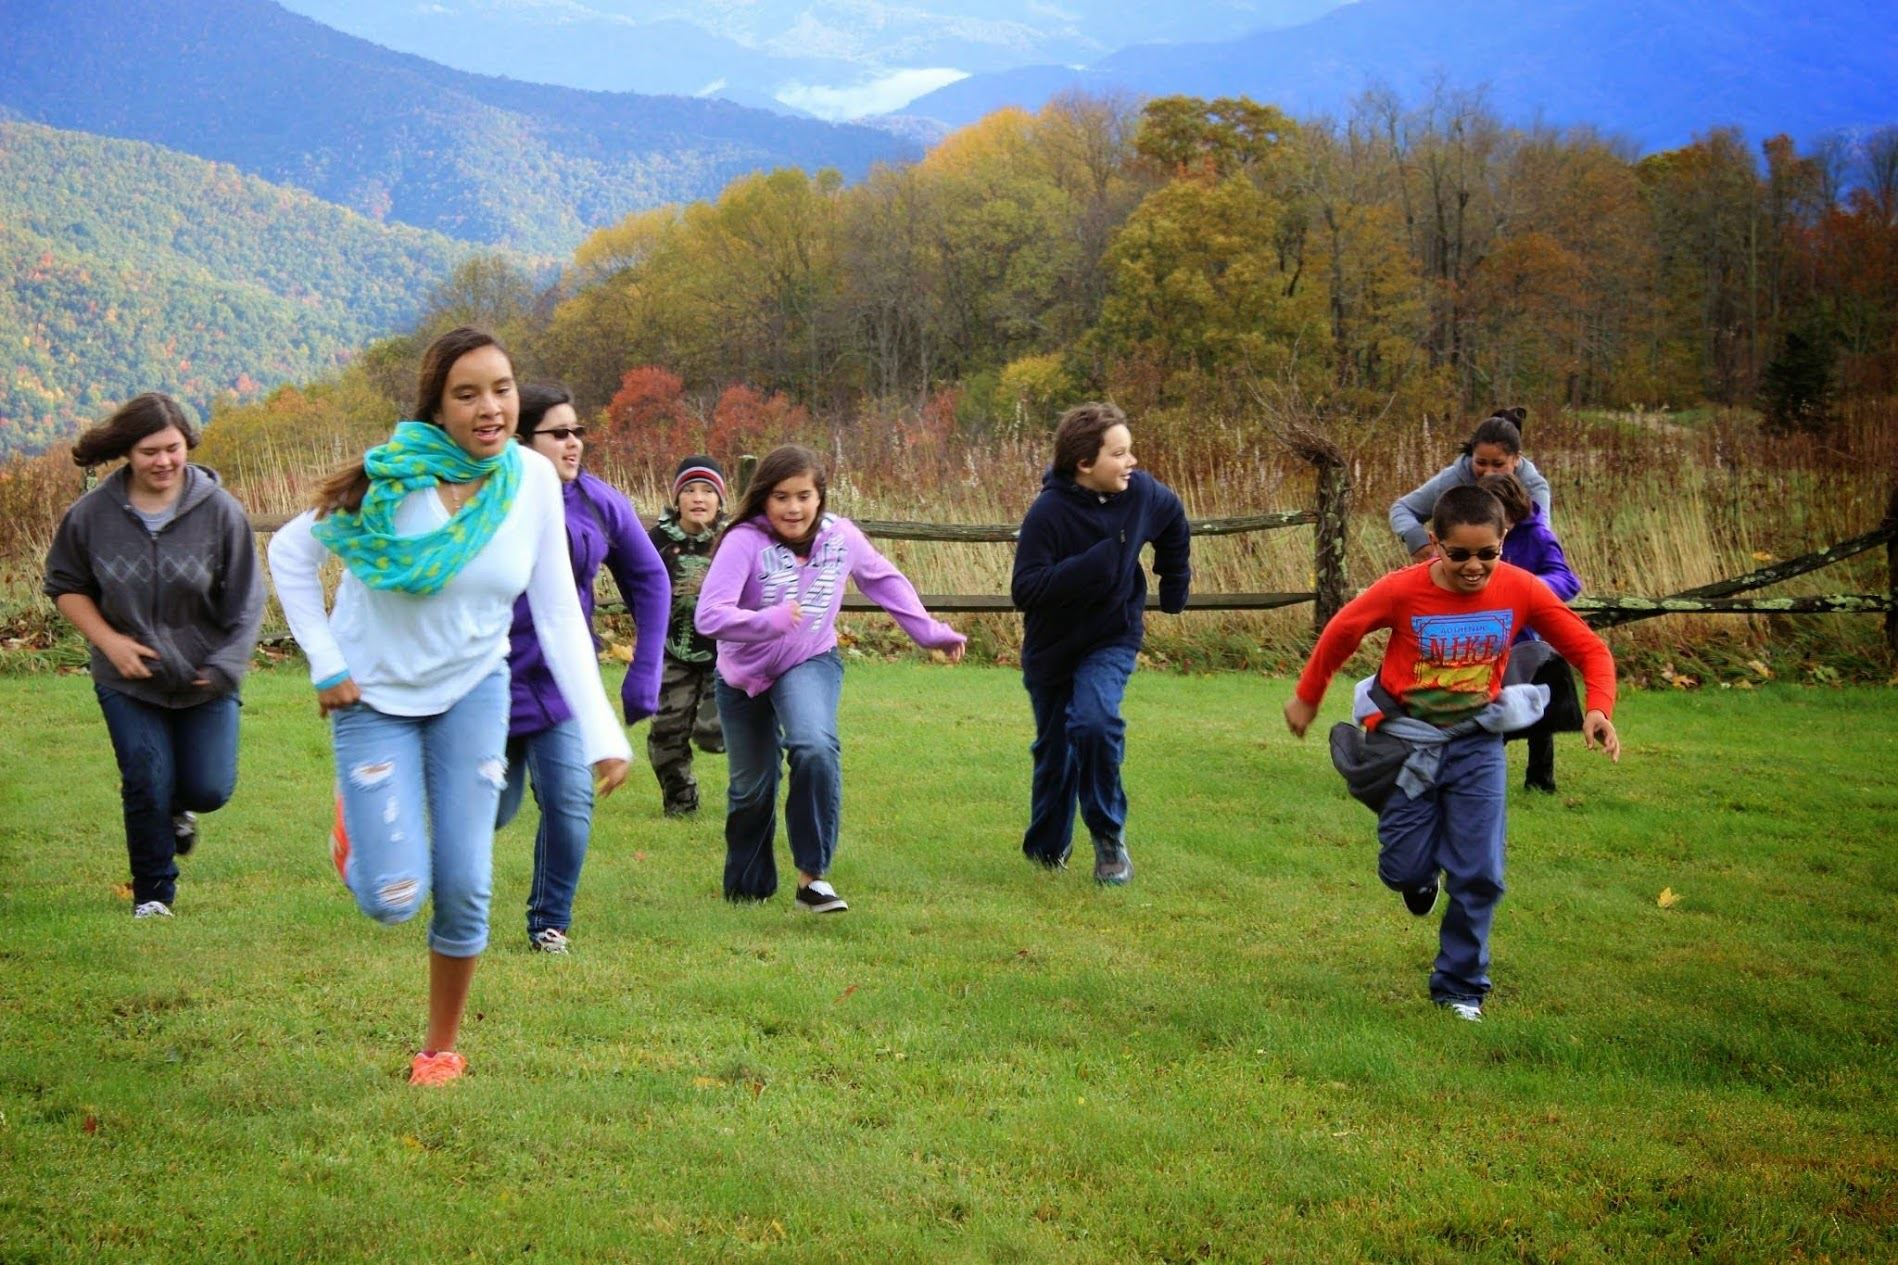 eight middle school aged students running in a field. from left to right: girl in grey sweatshirt with hands in pocket, girl with blue scarf, girl with purple zip up sweatshirt, boy with camouflage sweatsuit, girl with pink sweatshirt, boy with navy pull over, boy with glasses and orange long sleeve shirt and girl with dark hair and grey long sleeve shirt.